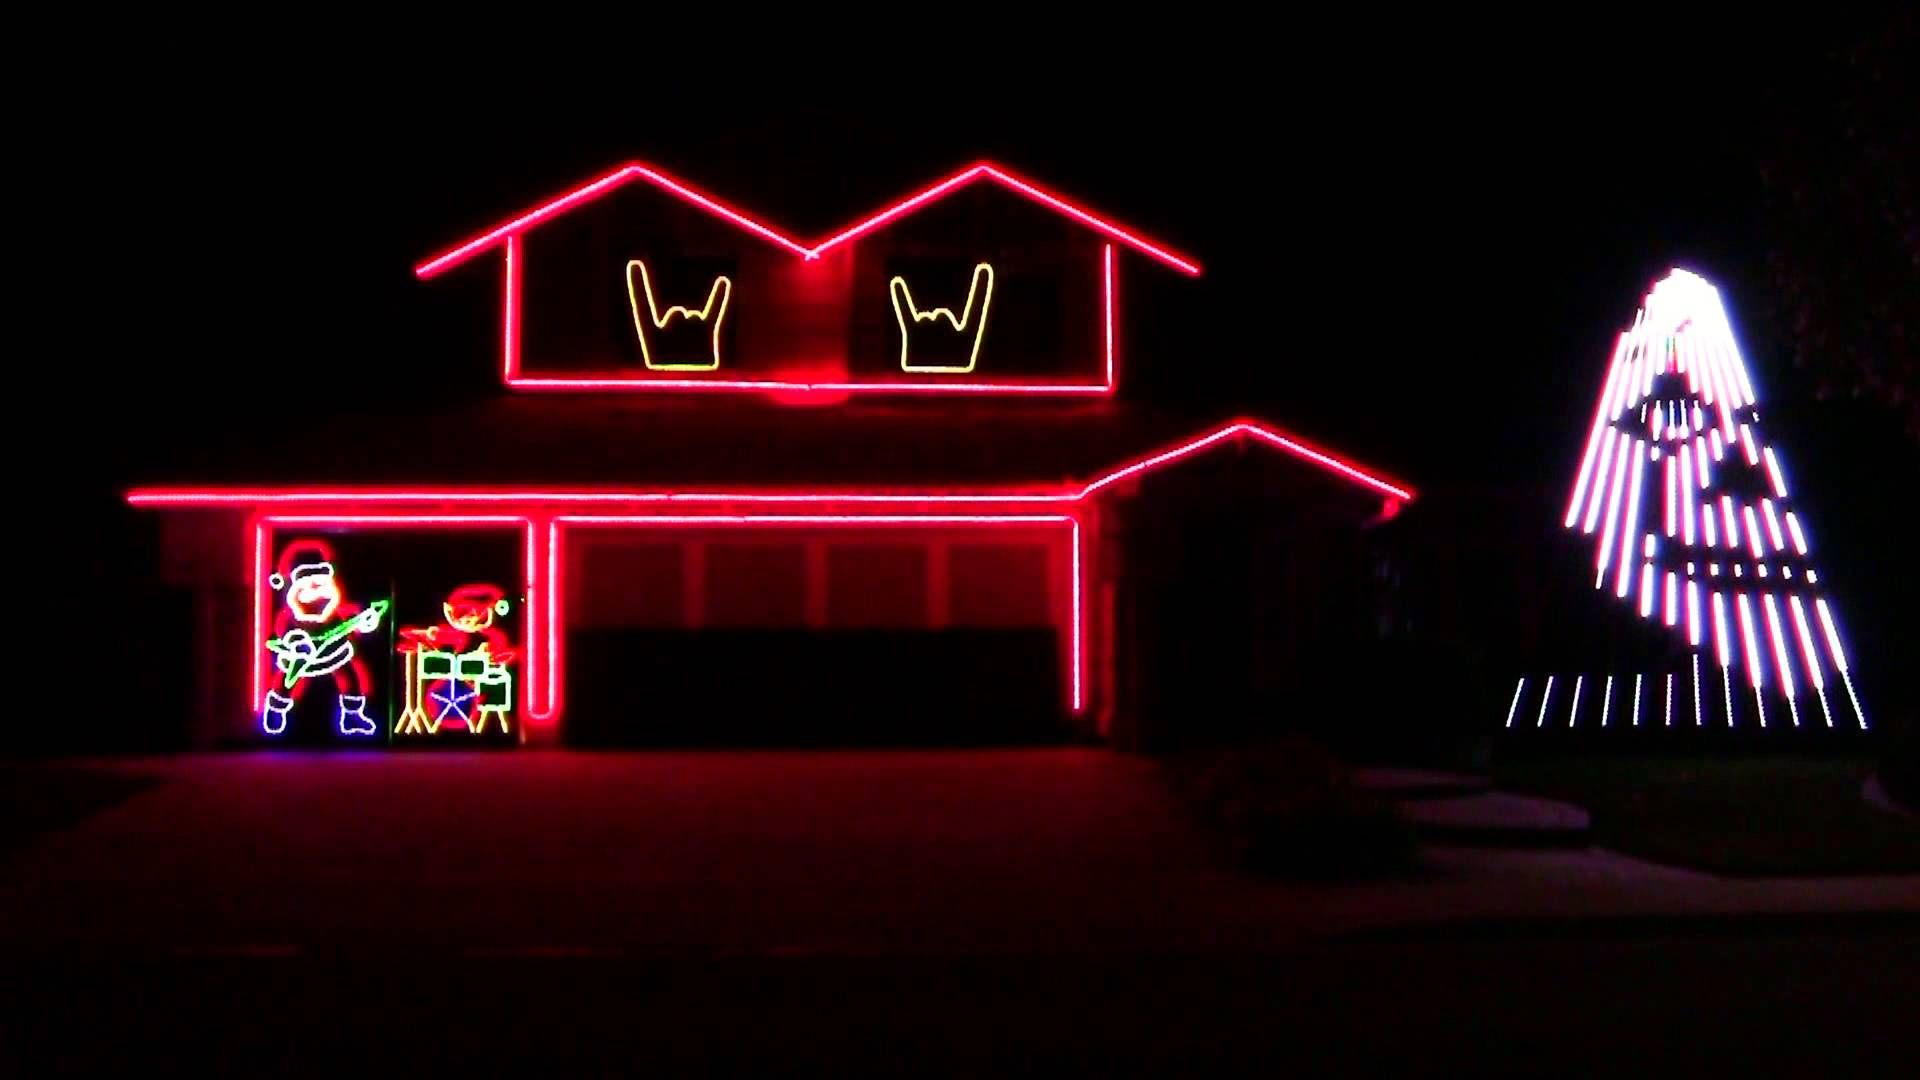 Slipknot Christmas Lights 2015 You Have To Watch This